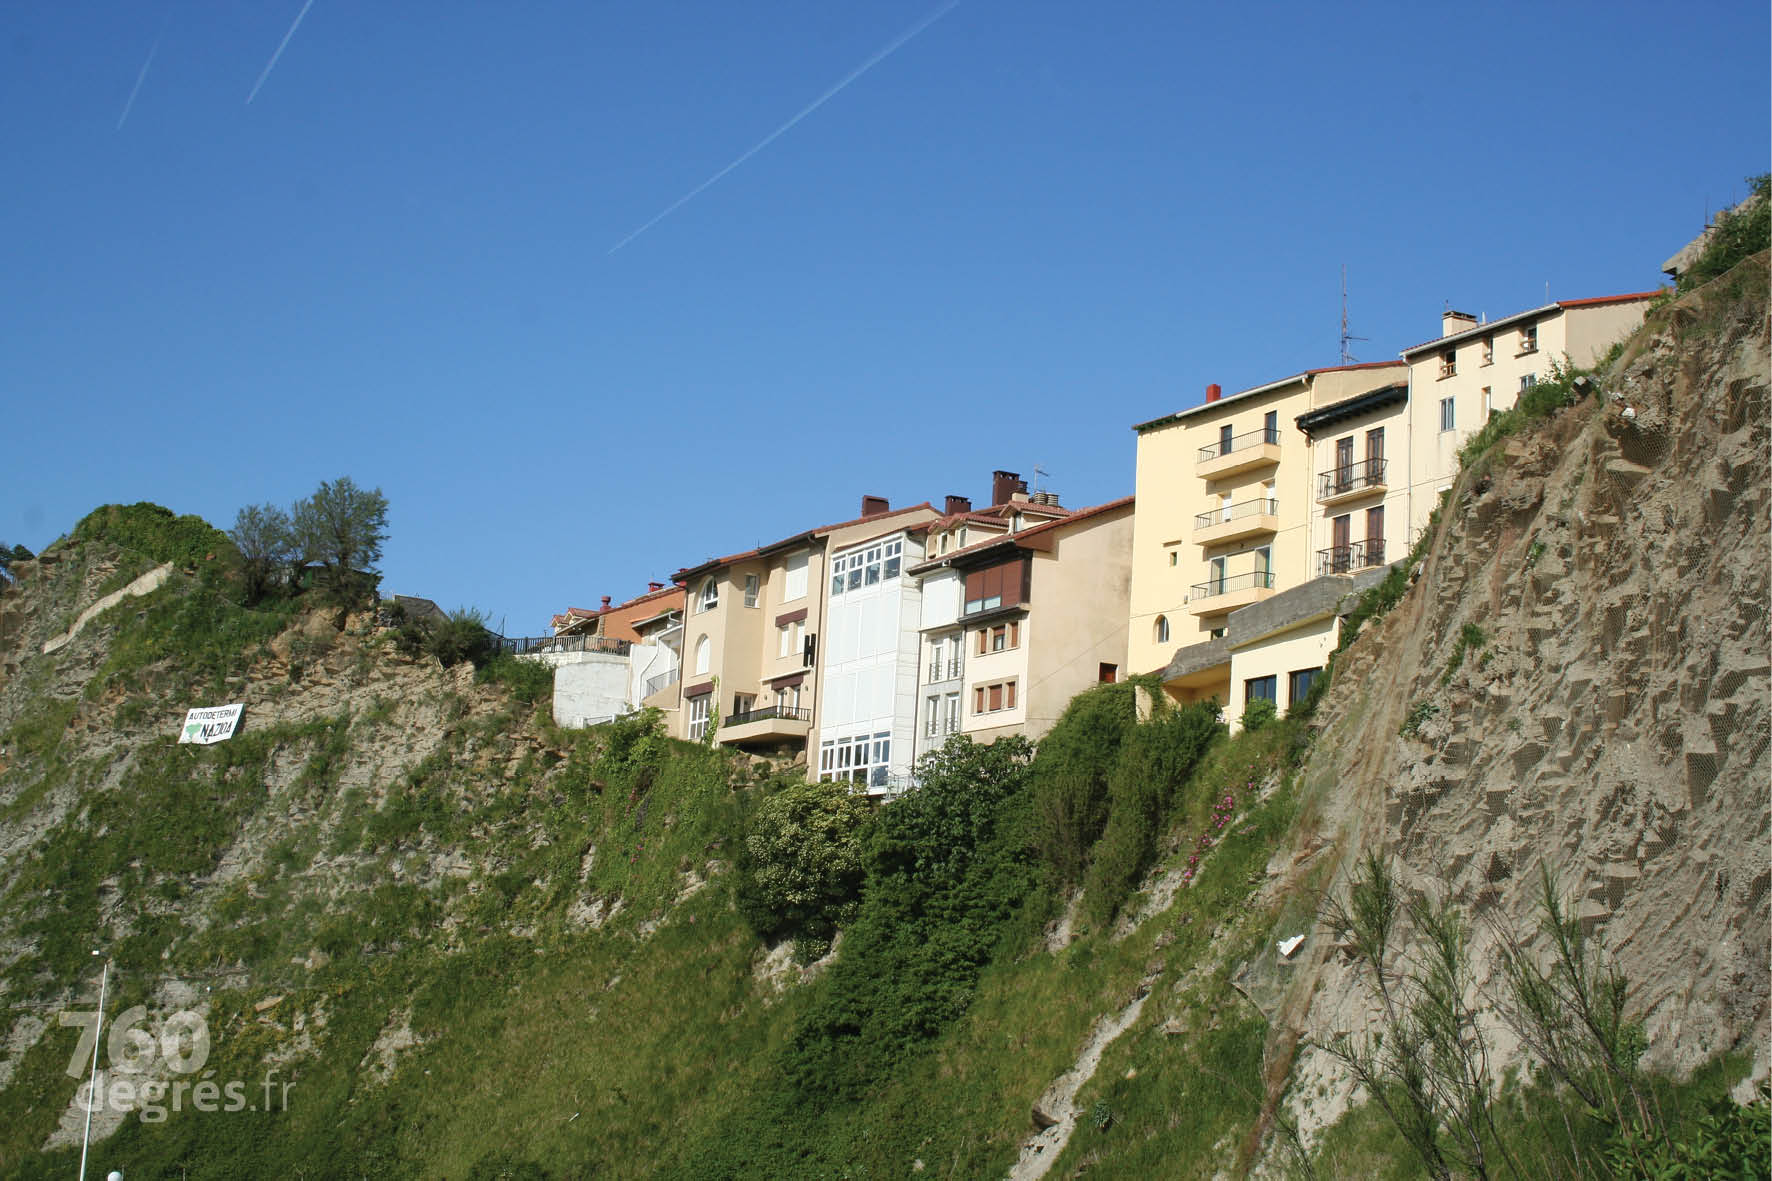 760degres-pays-basque-getaria-05